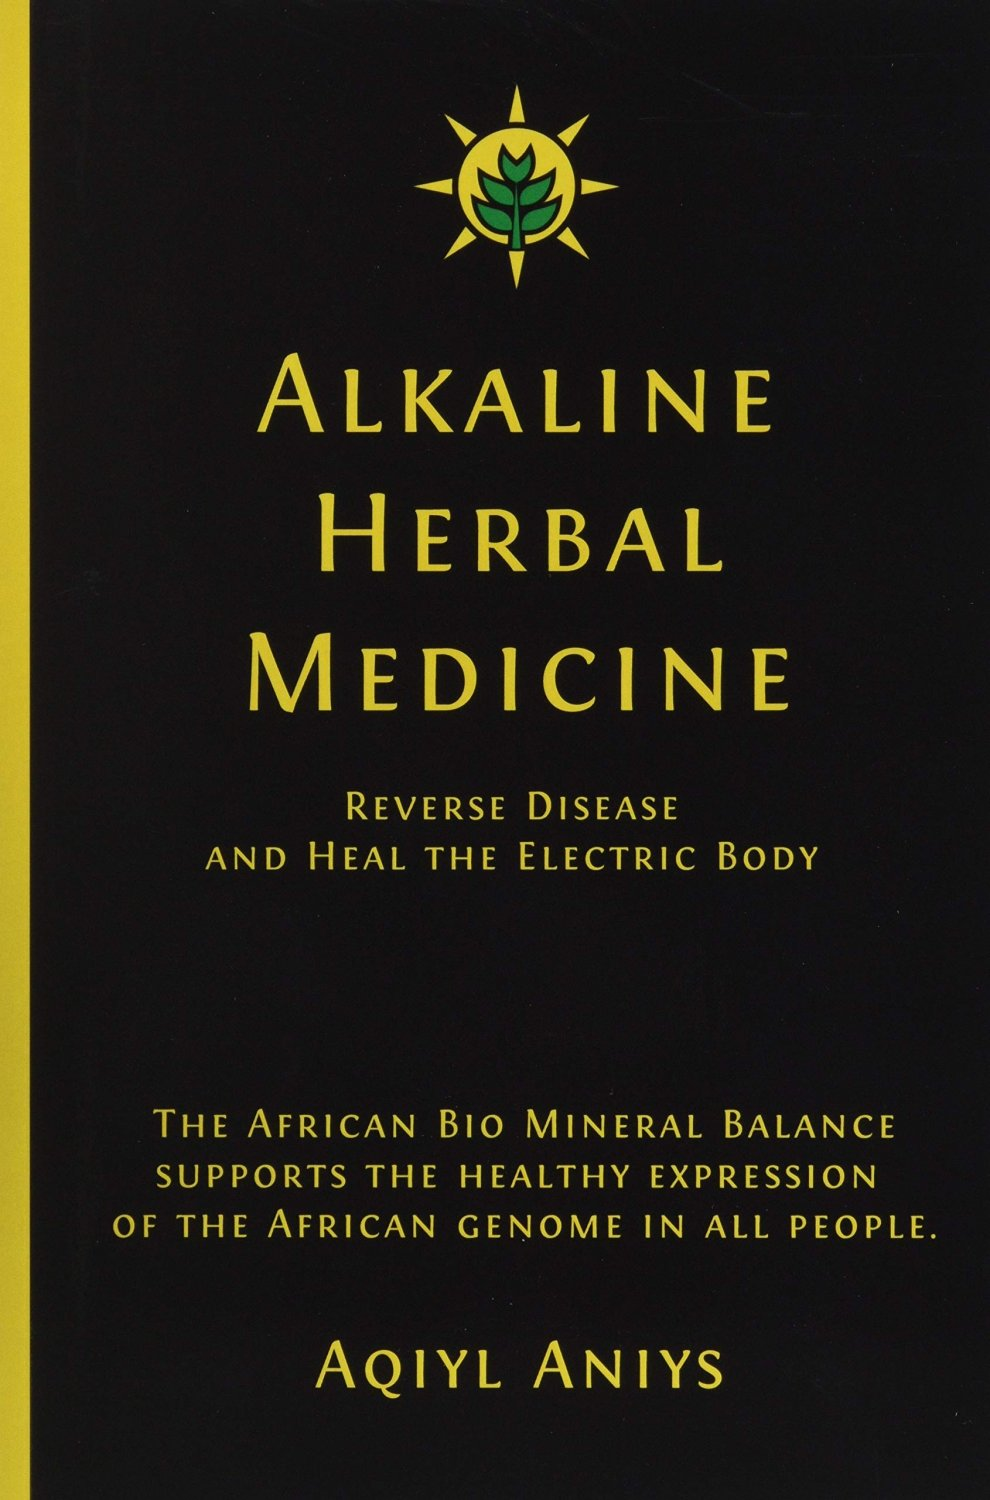 Alkaline Herbal Medicine_Reverse Disease by Aqiyl Aniys E-BOOK